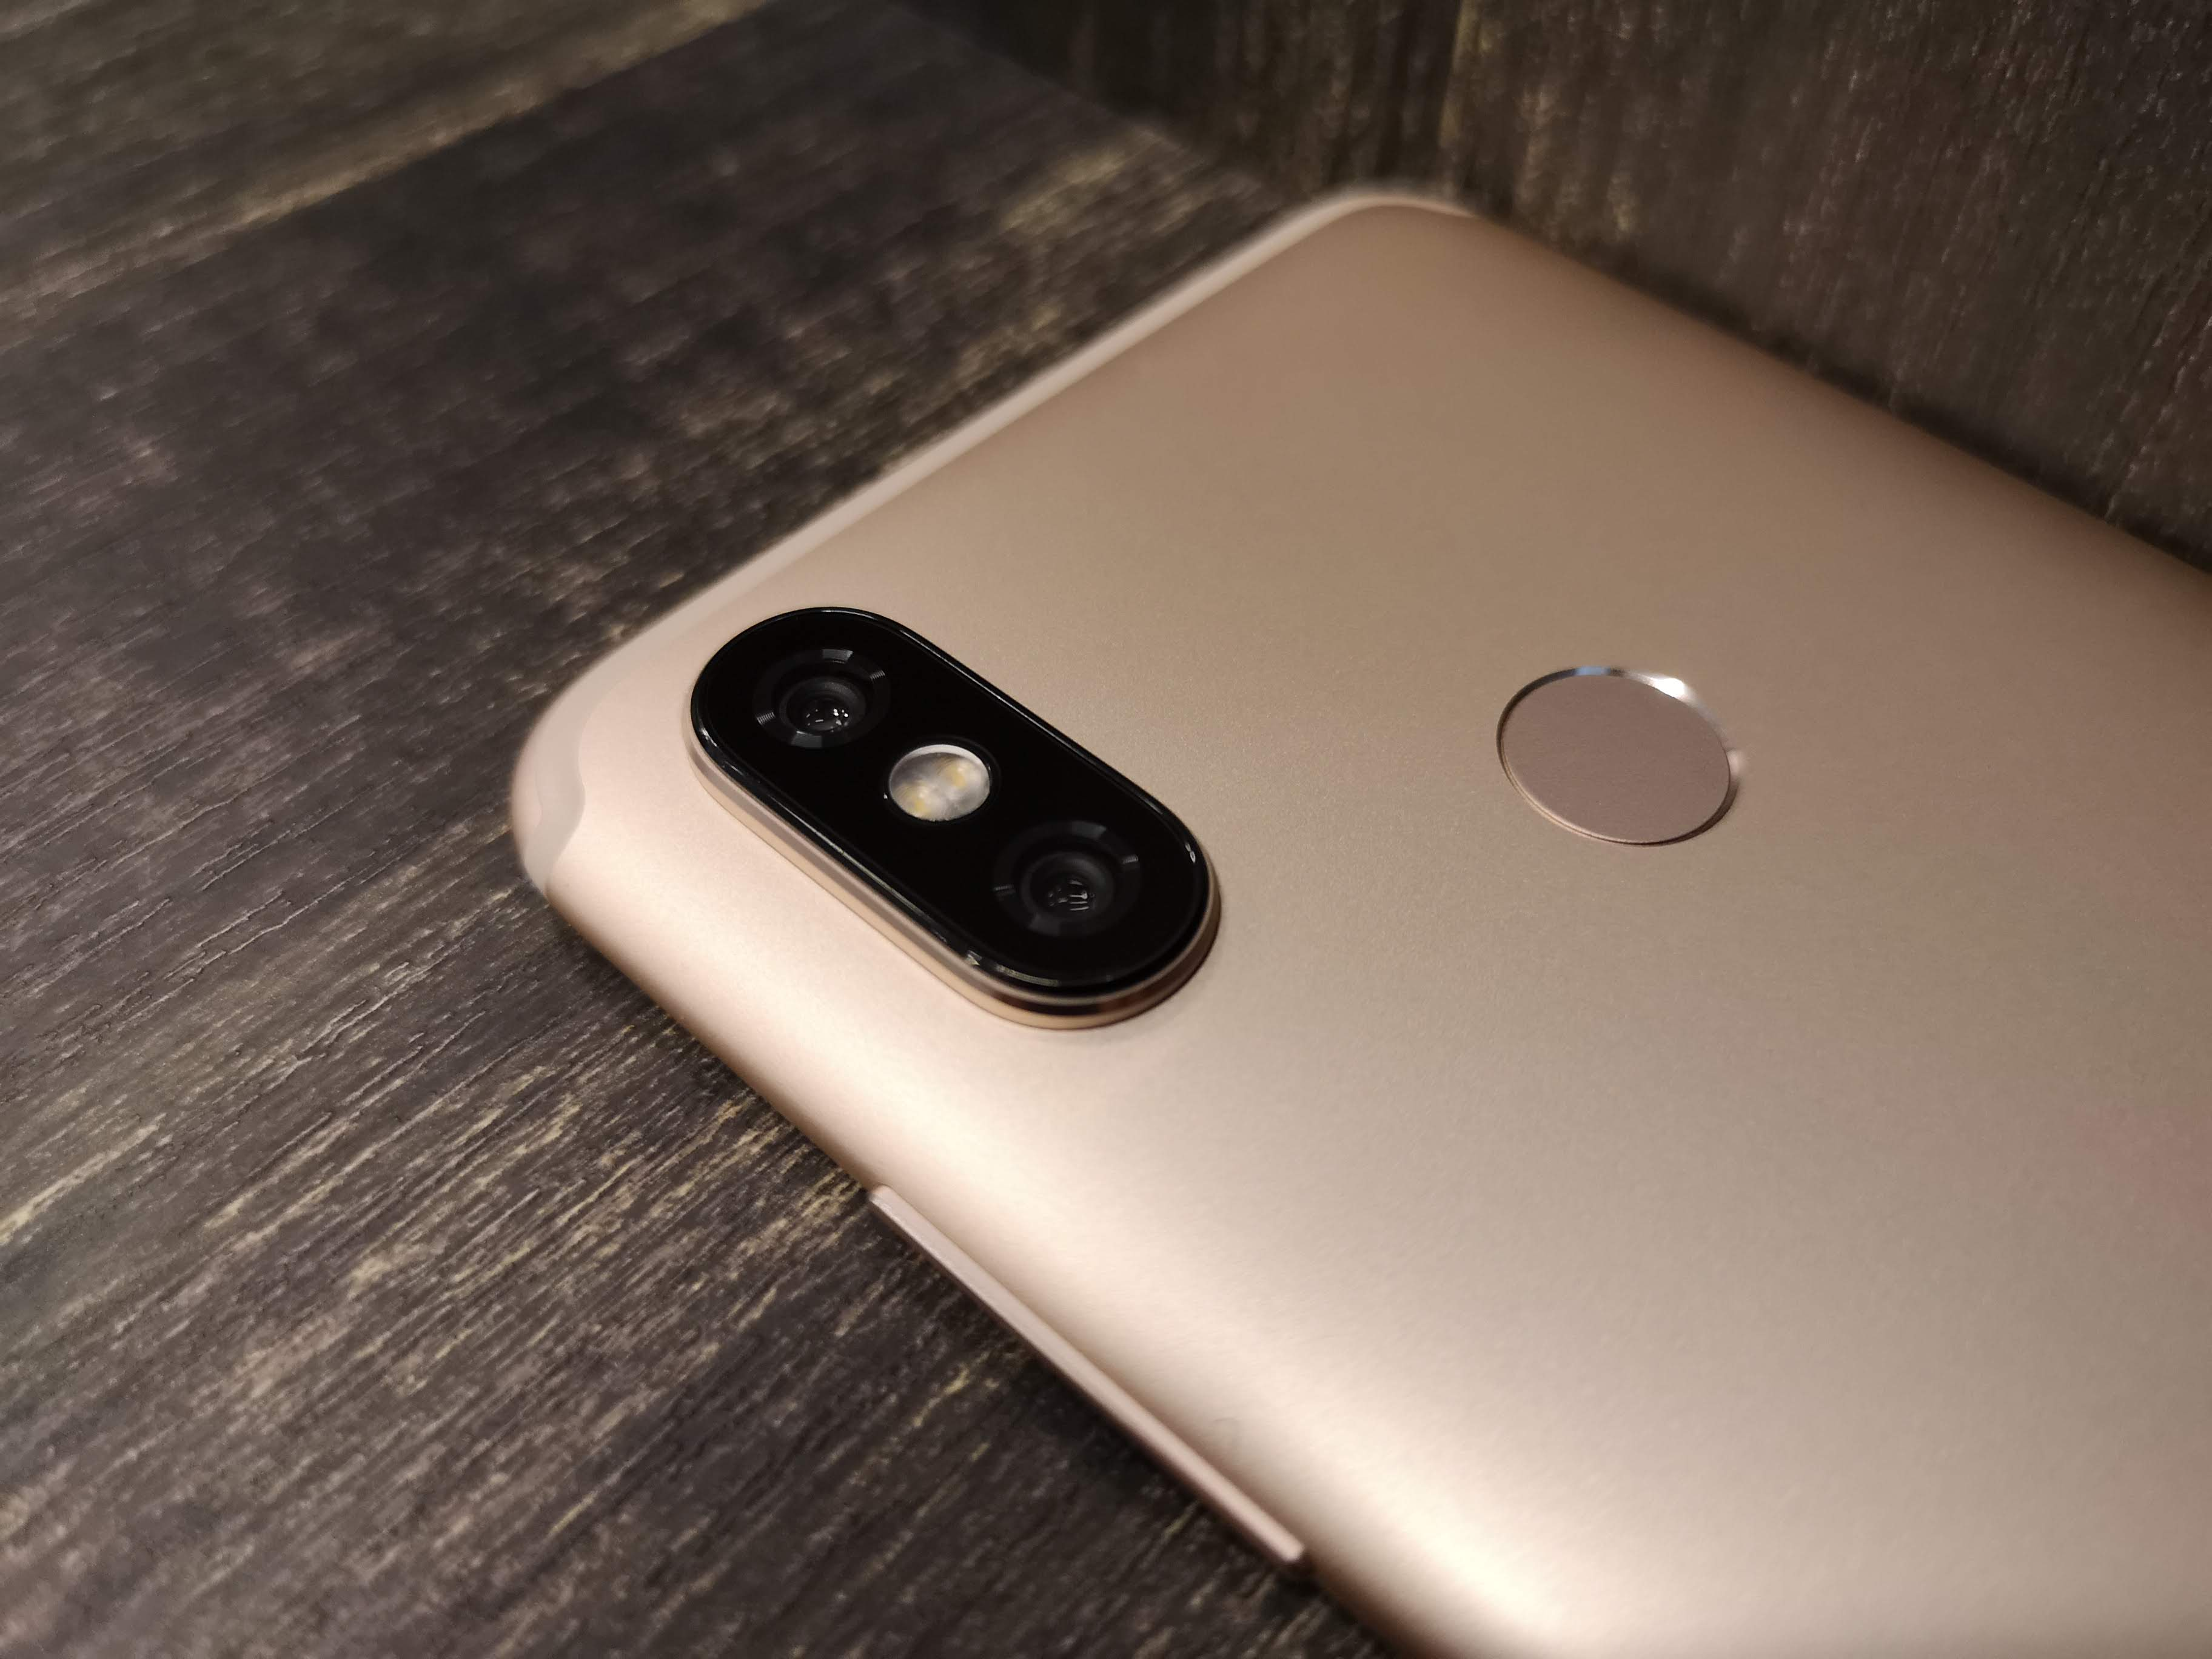 Xiaomi Mi A2 review: Is this the Android One phone to get